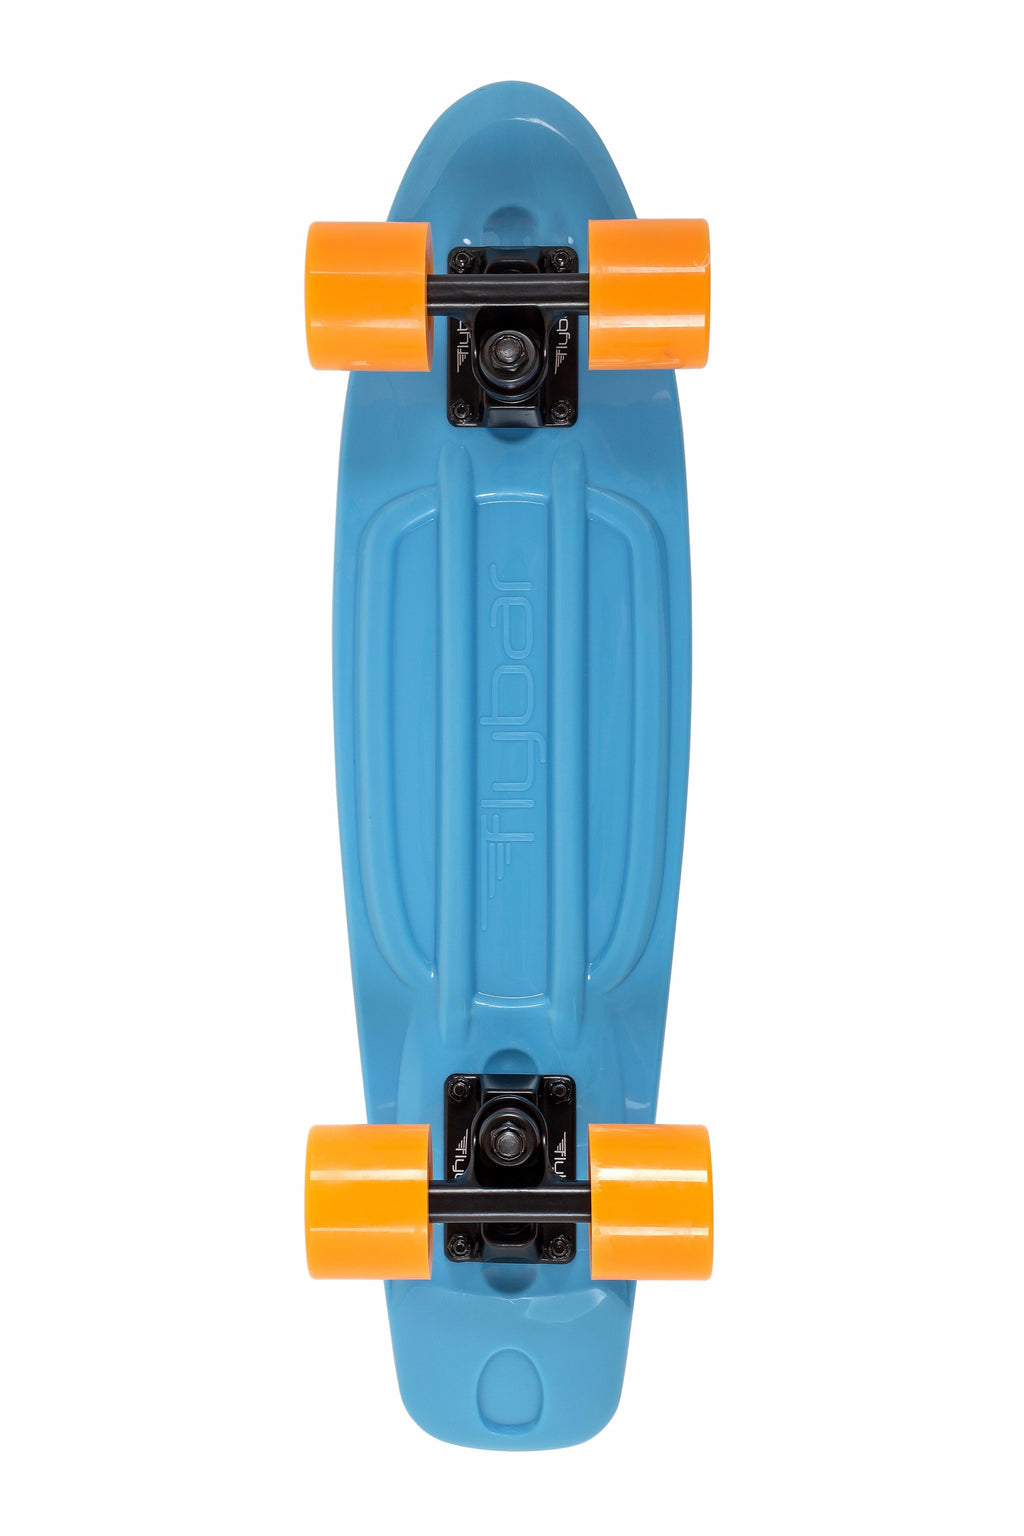 "Flybar 22"" Complete Plastic Cruiser Skateboards- Blue, Orange - Da Da Kinder Store"